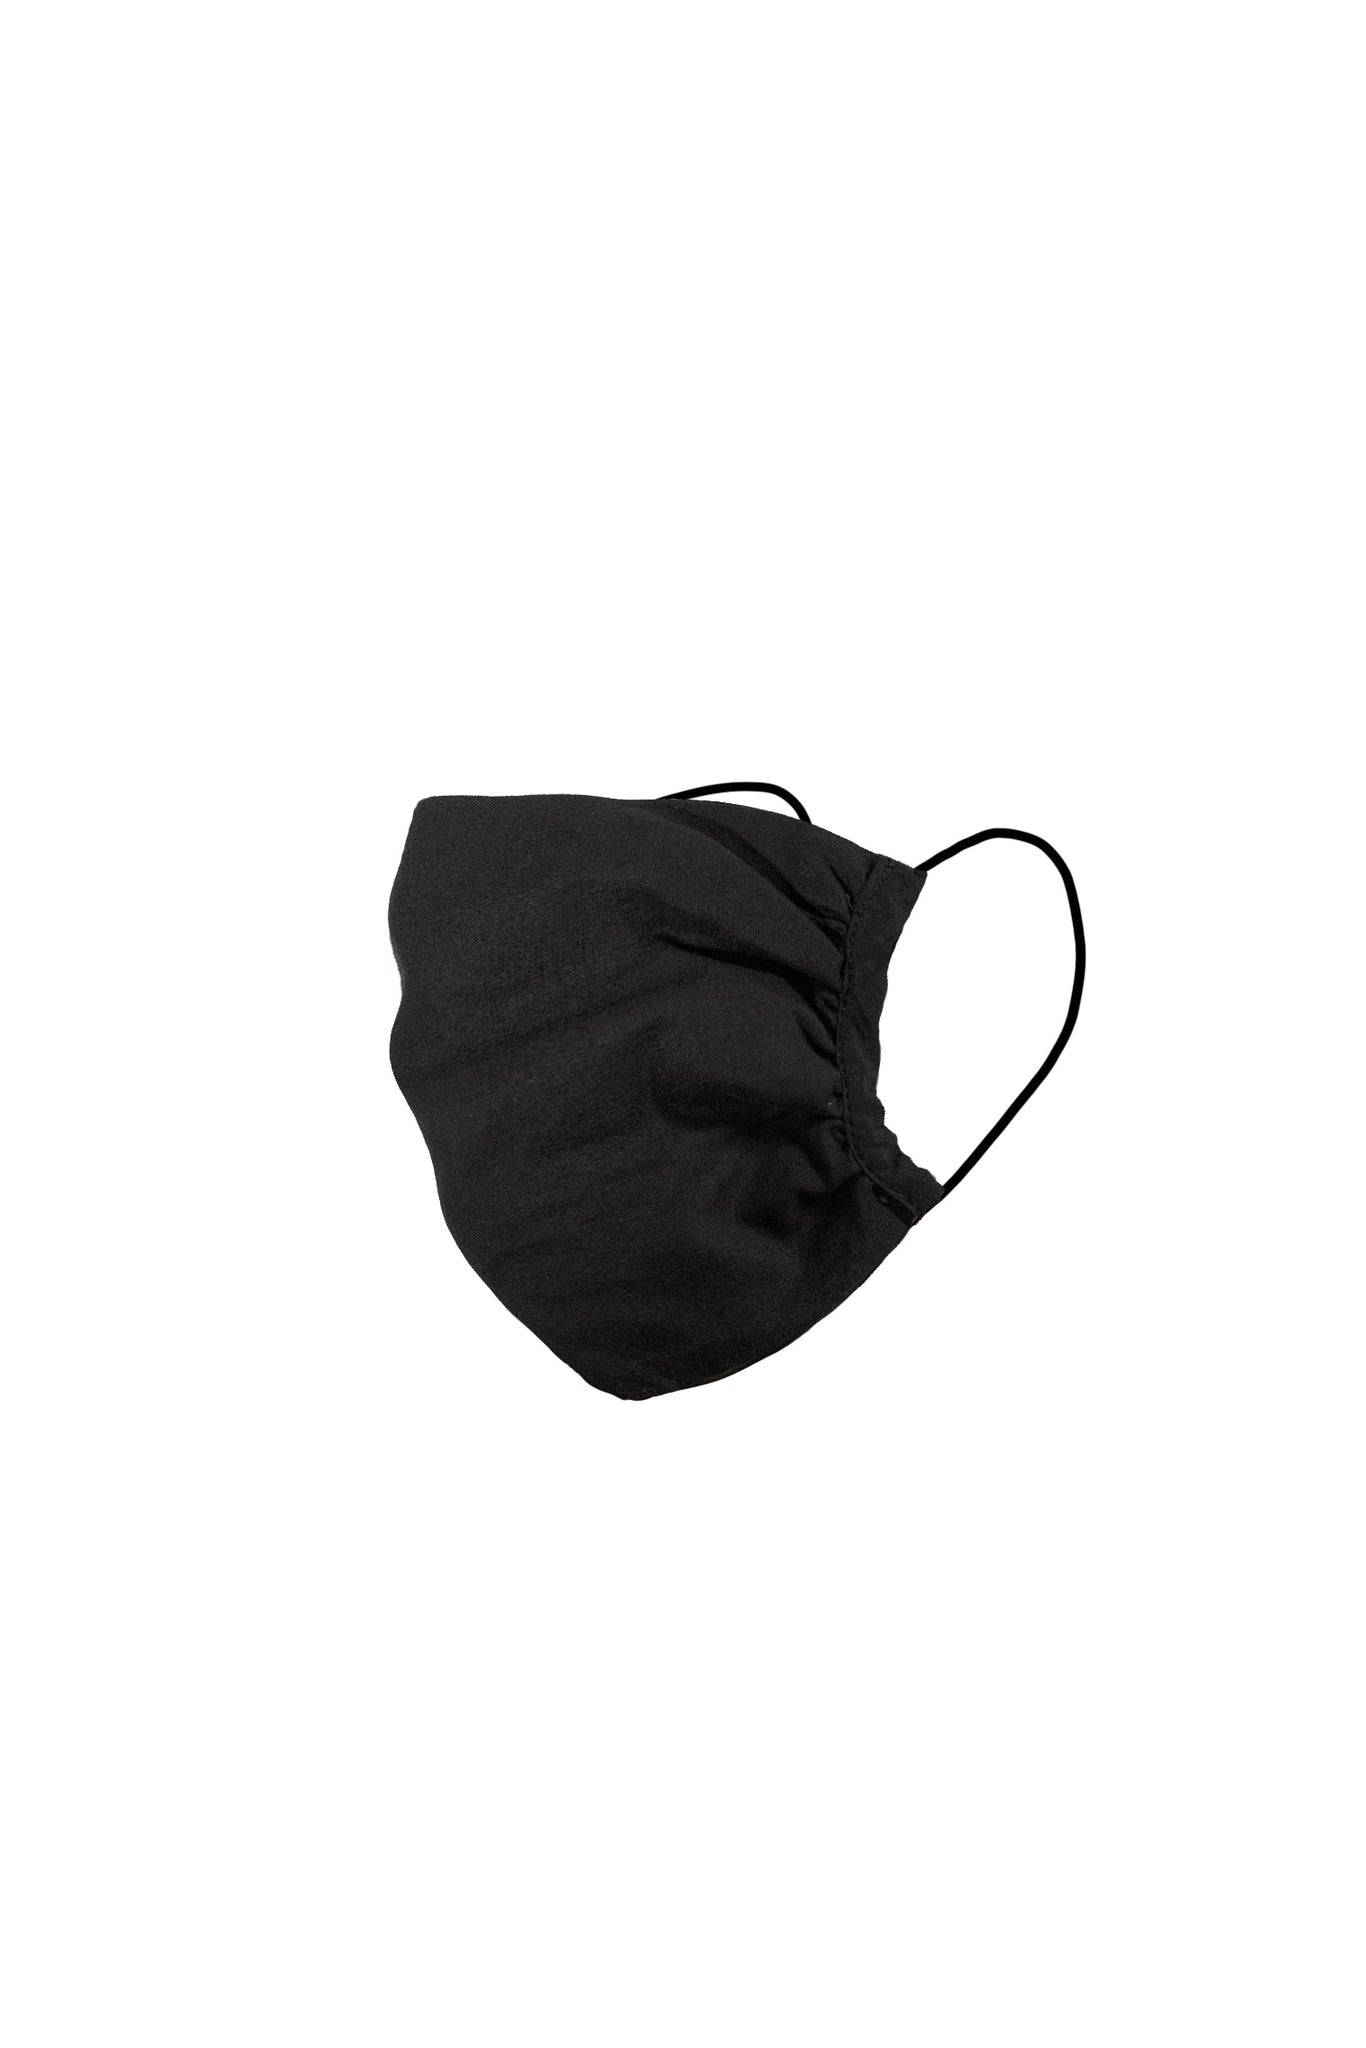 KES Peace Face Covering - Black Bundle (10 in 1 Pack)